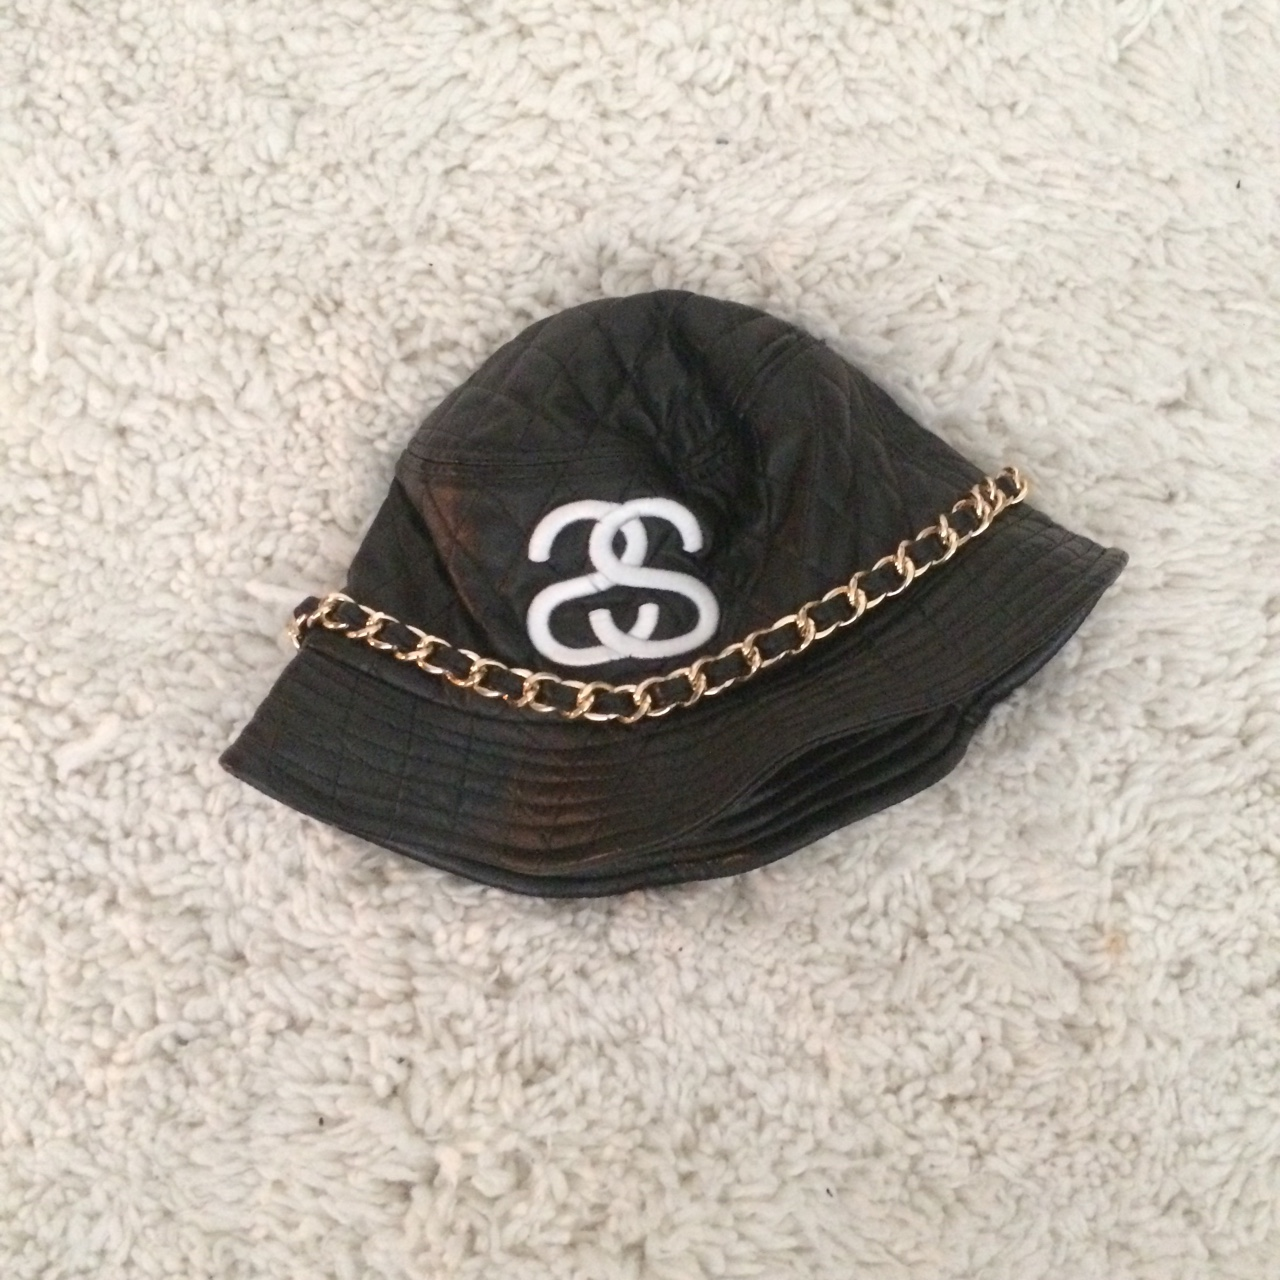 Stüssy Womens bucket hat. Never worn! Perfect for summer 🌞 - Depop a0572974c4